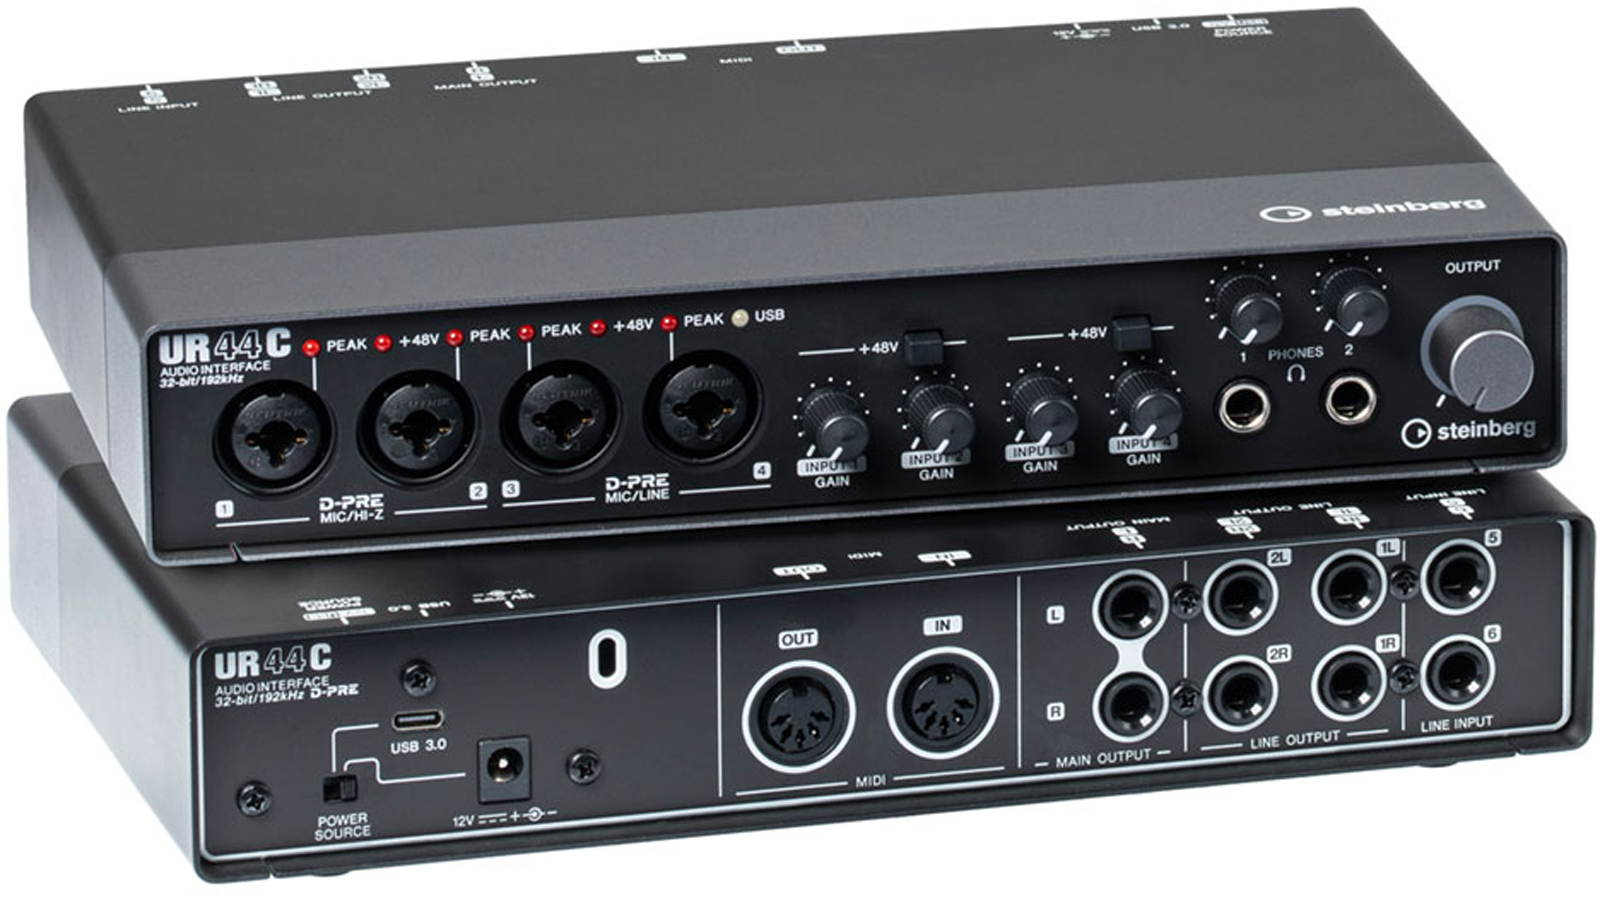 Steinberg UR44C USB 3 Audio Interface